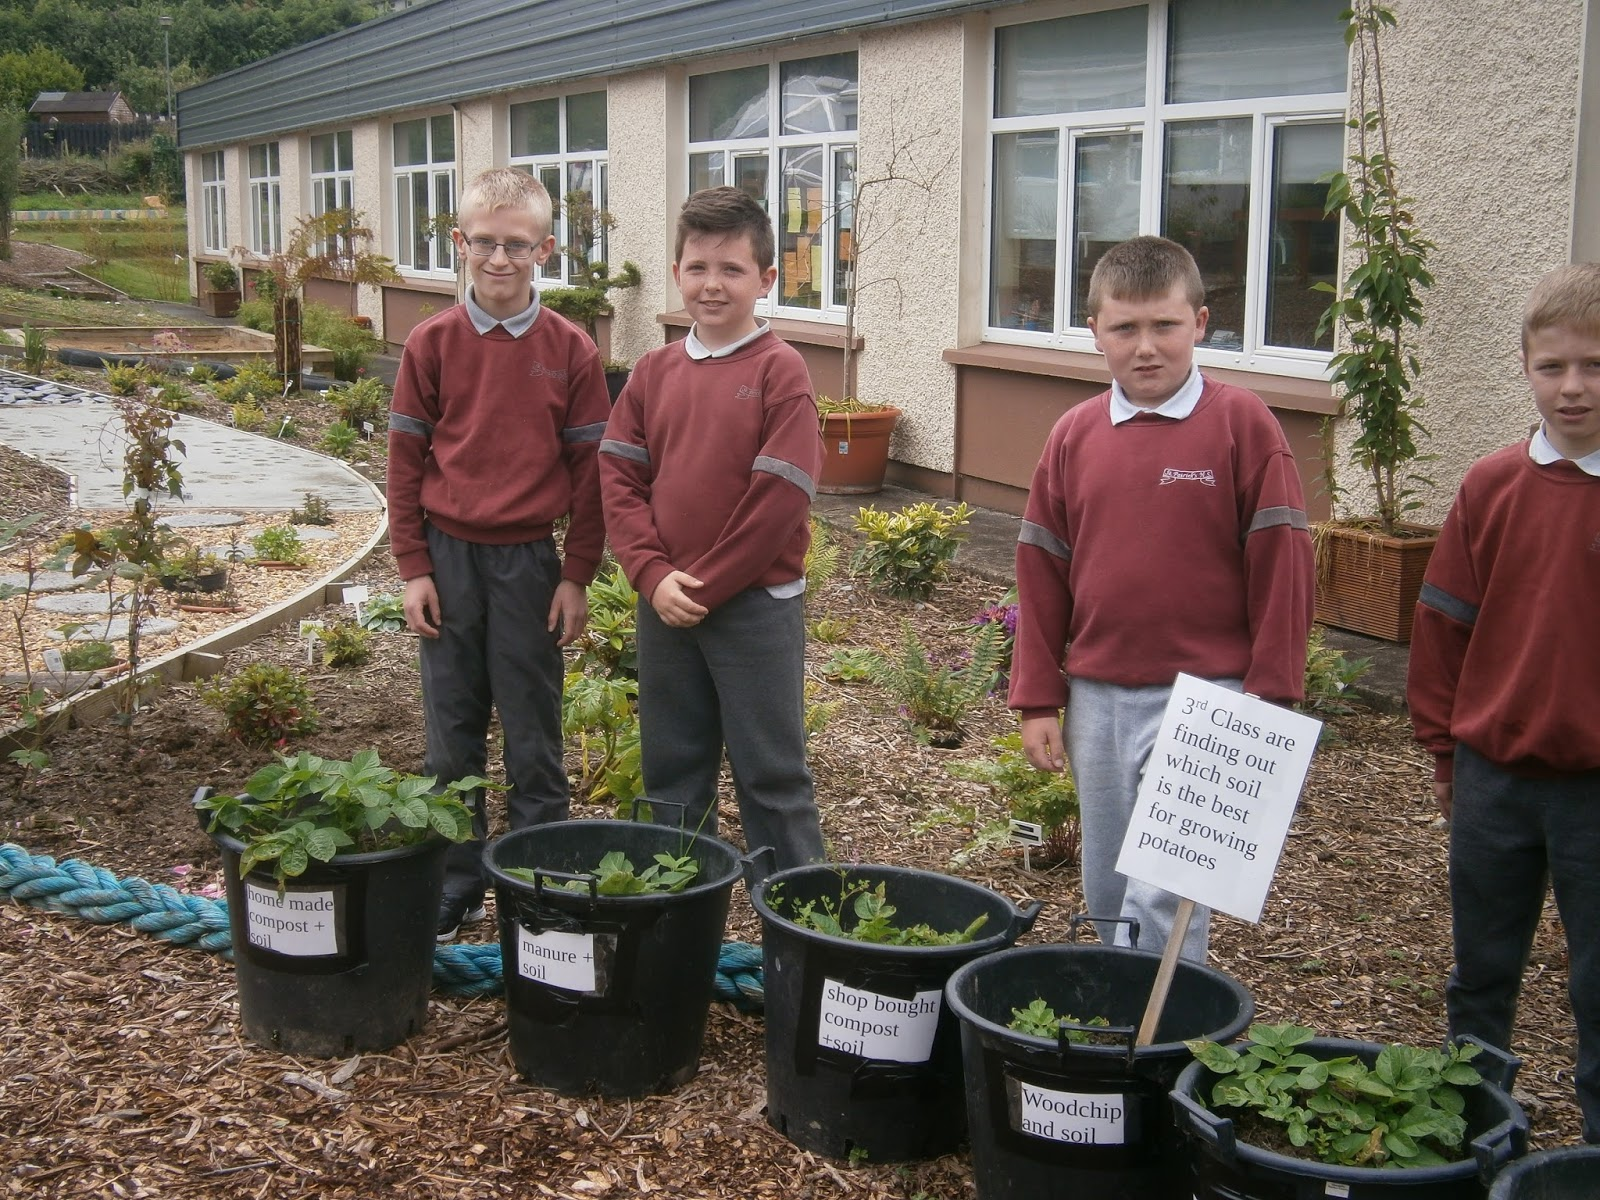 First Up Was A Trip To To St Patricku0027s Boys National School In Skibbereen  Who Have Developed A Wonderful Garden On What Was Once A Grassy Slope.